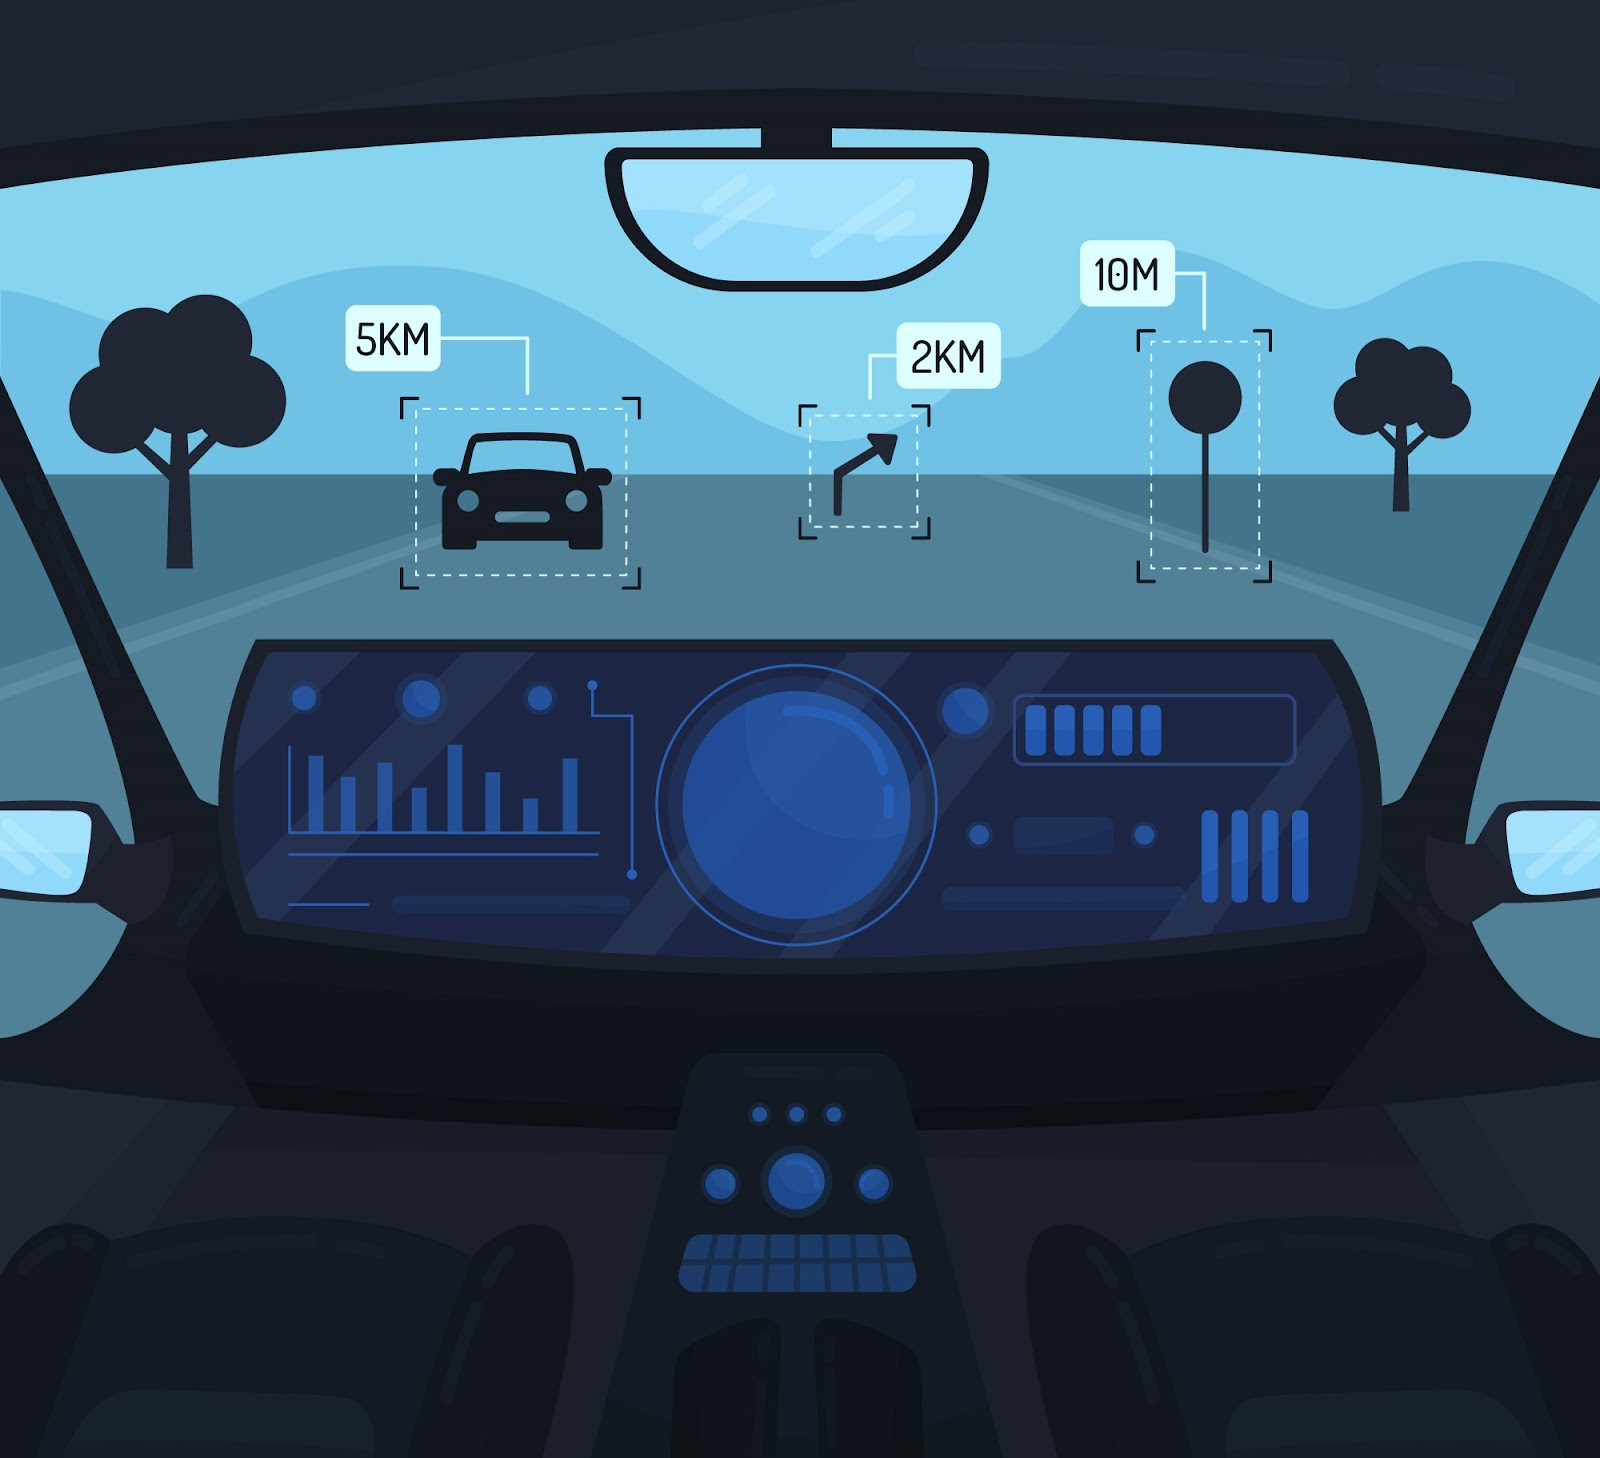 Prediction and Planning in self-driving car.